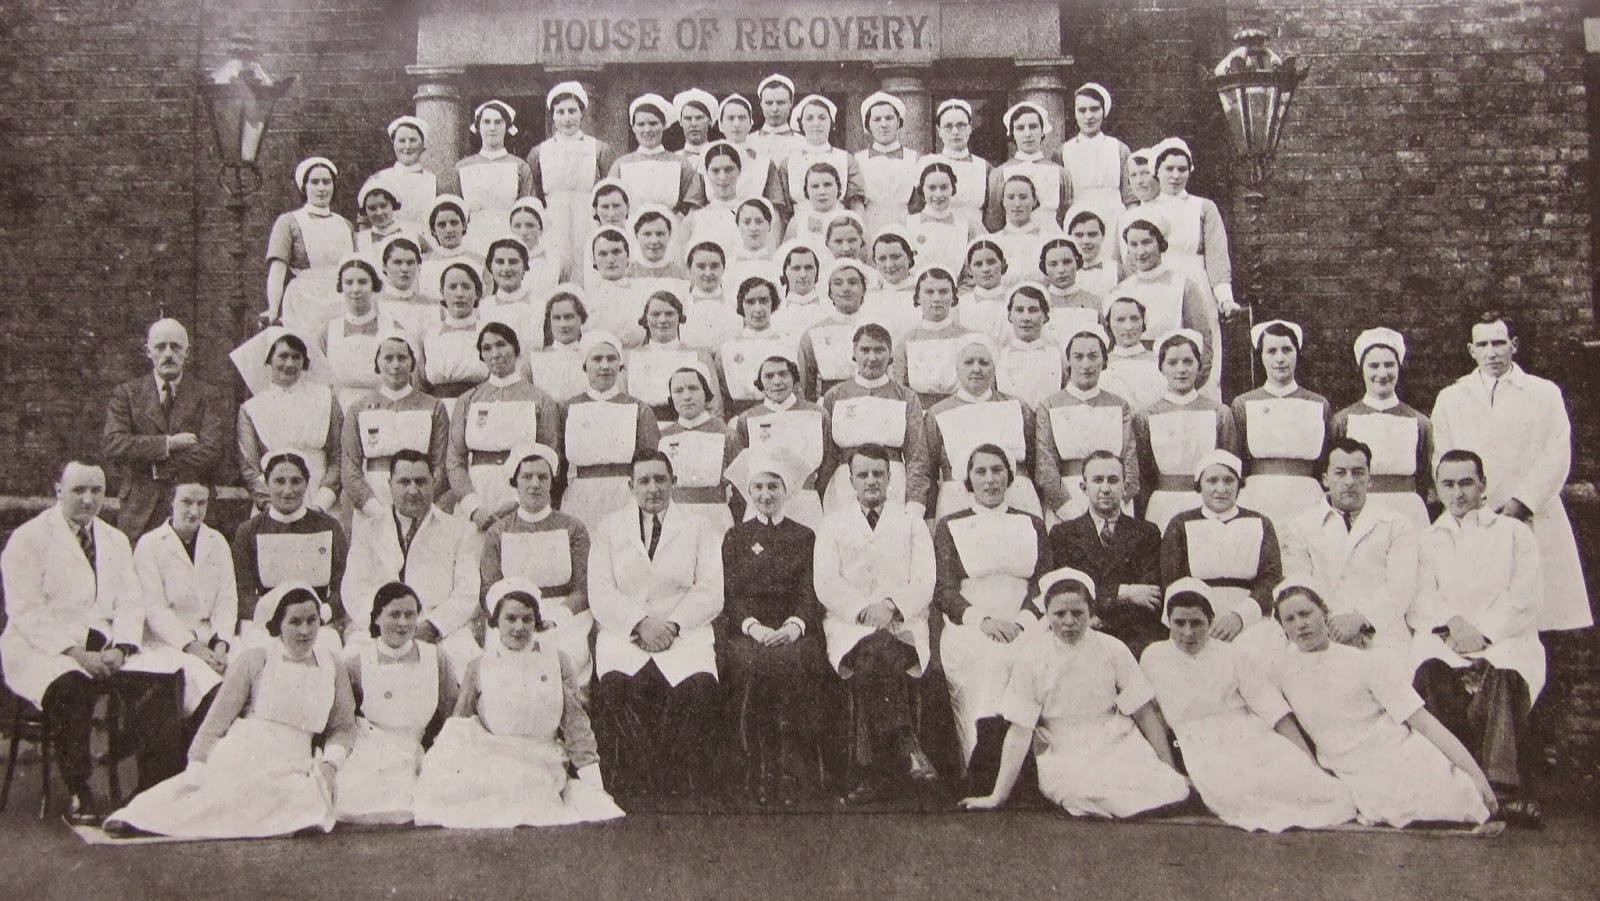 Staff of Cork Street Fever Hospital, Dublin, Ireland 1938. Dr. C. J. McSweeney, Medical Superintendent, is  pictured sixth from the right in the second row